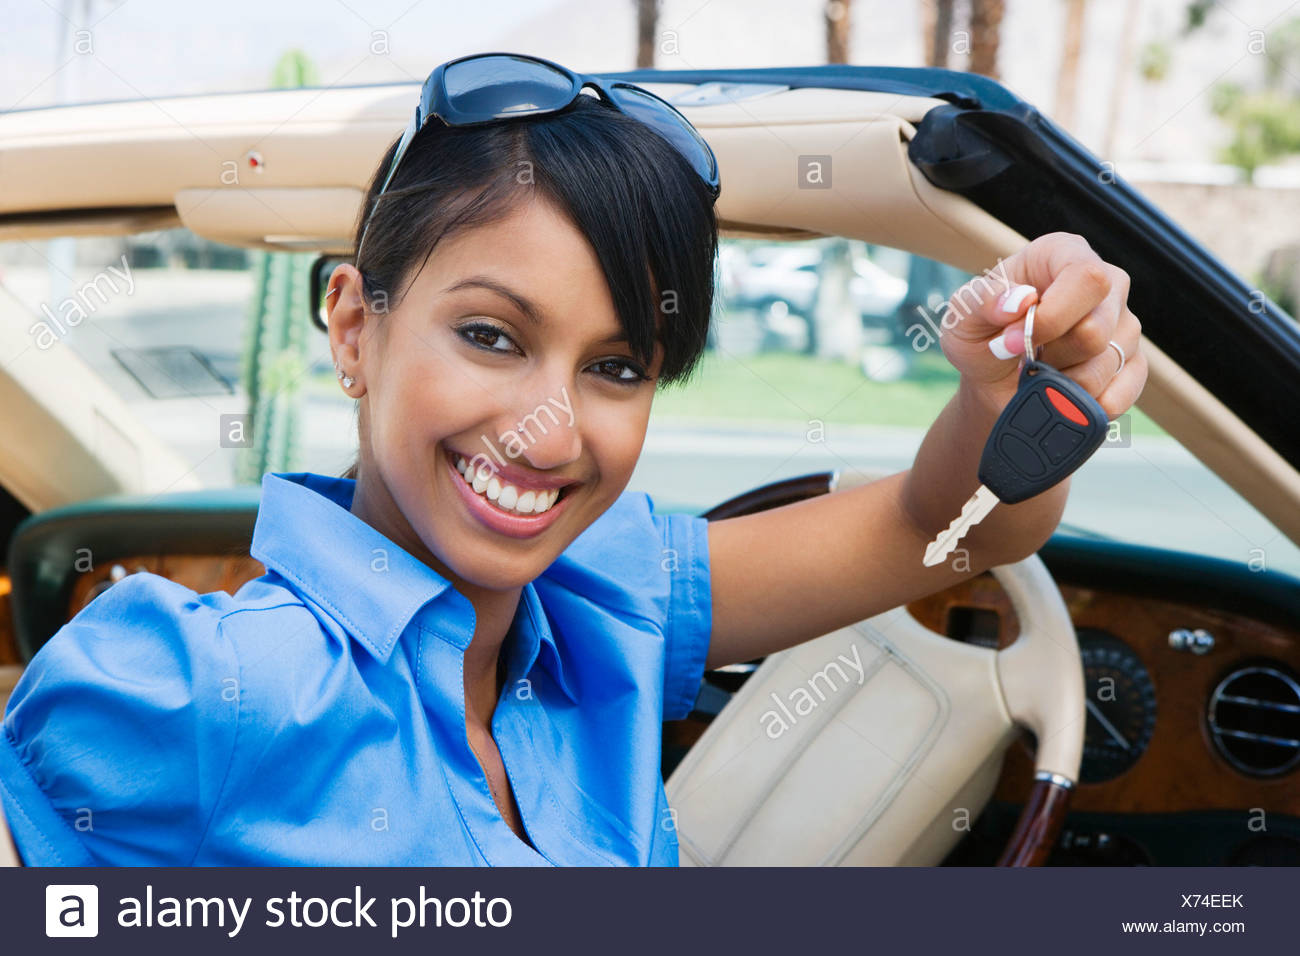 Young Woman Holding Key to Convertible - Stock Image